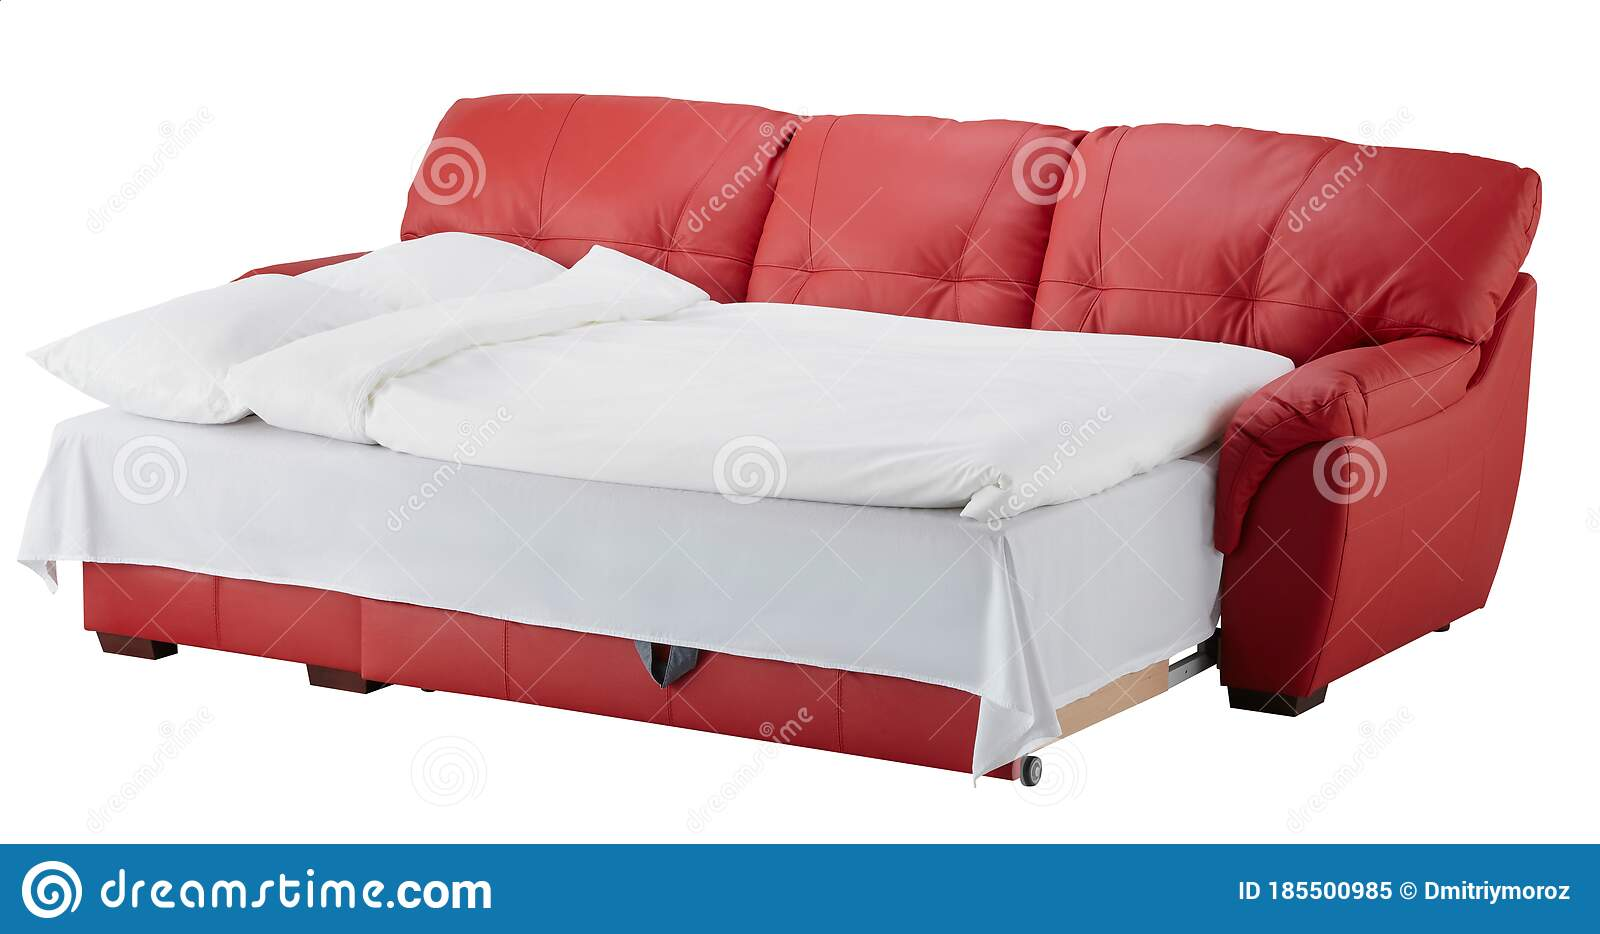 Picture of: Red Leather Corner Couch Bed Isolated On White Stock Image Image Of Bedroom Design 185500985